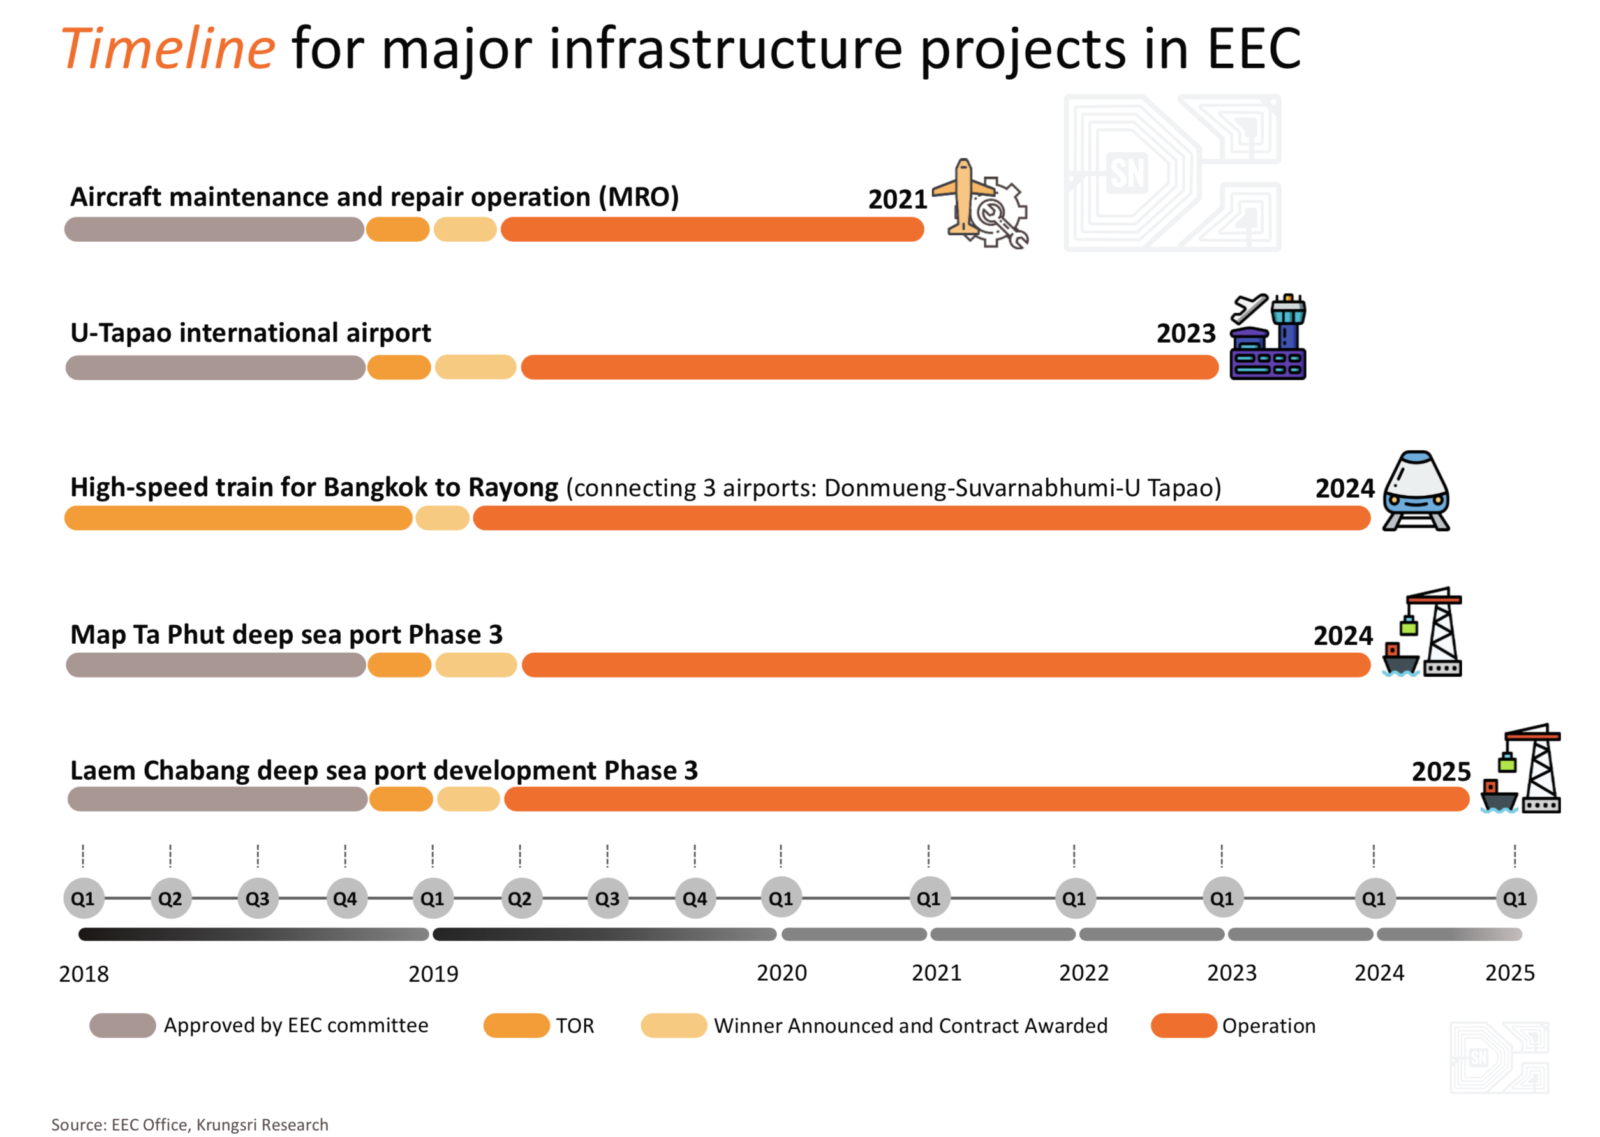 Stark Networks Thailand Infrastructure Timeline for EEC Projects